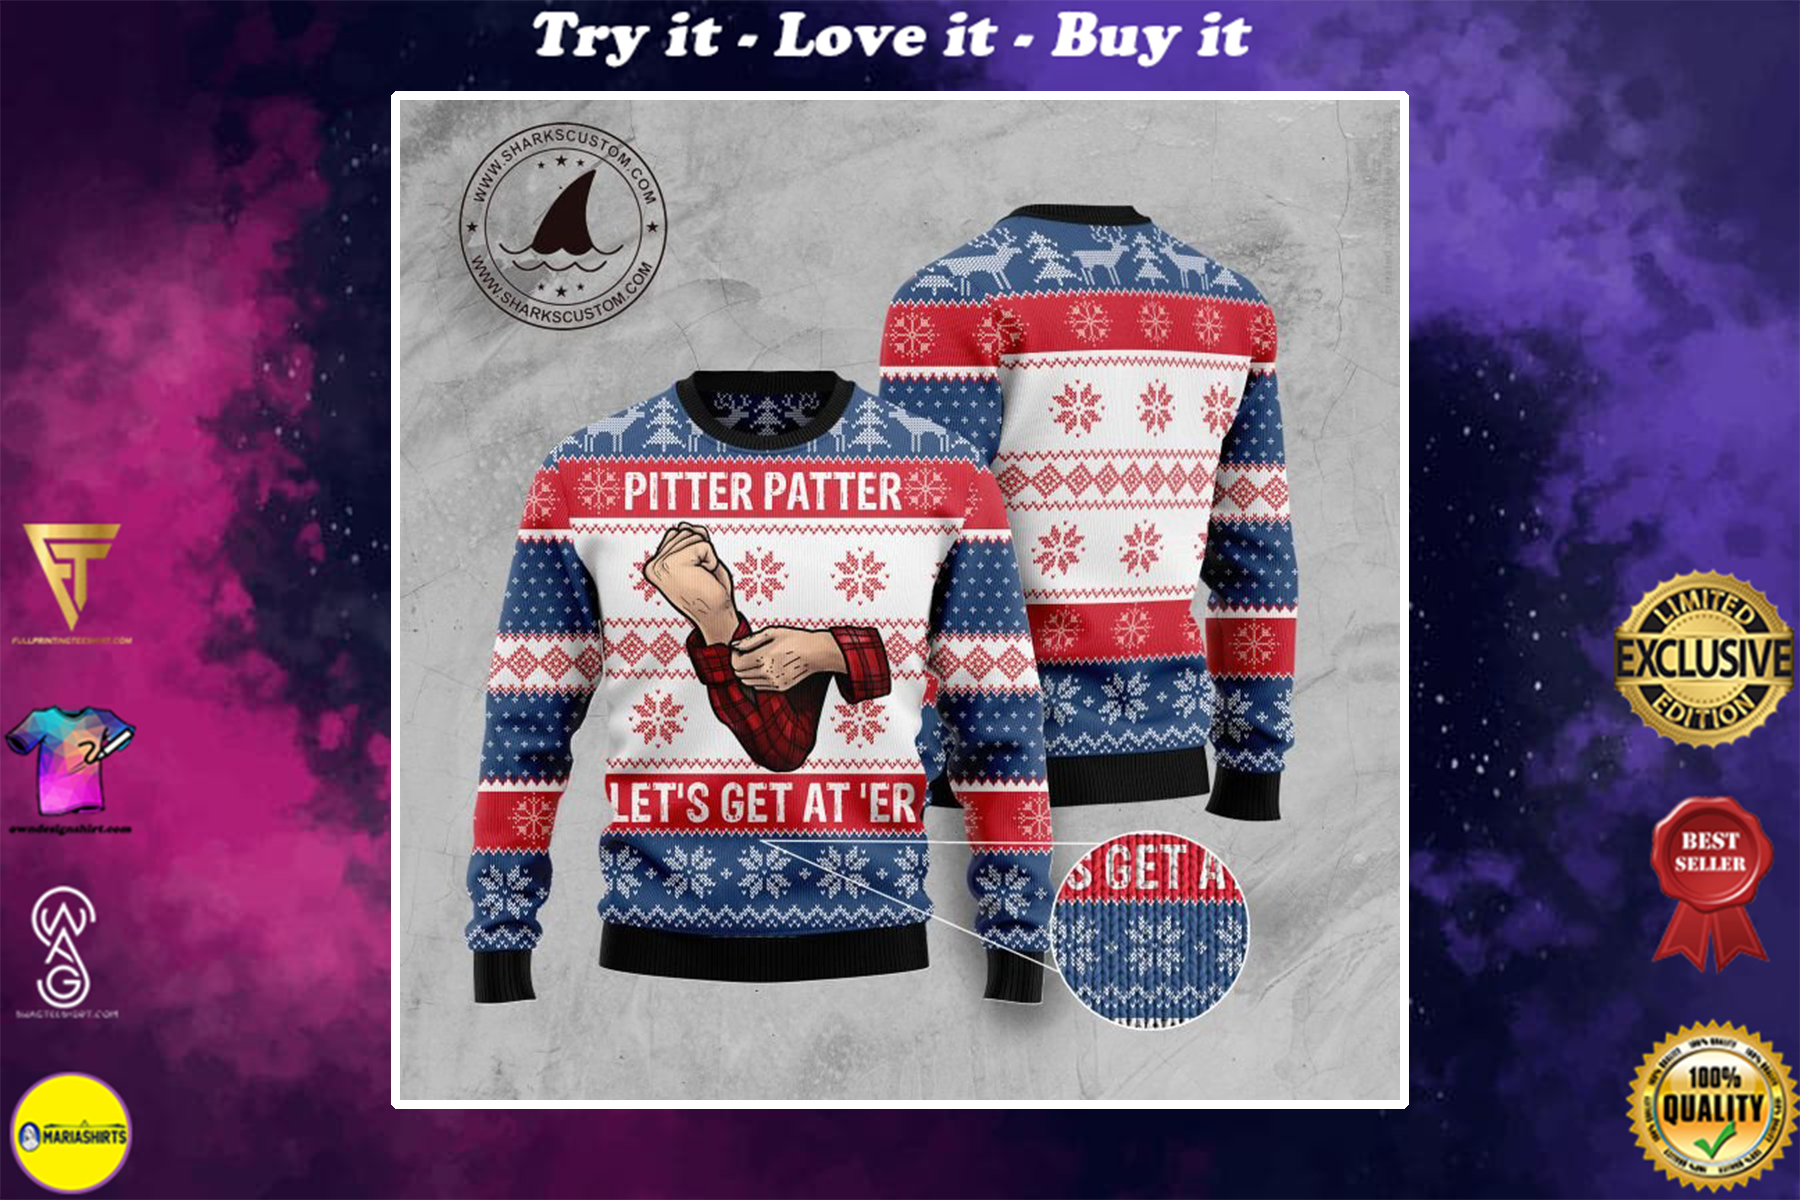 [special edition] pitter patter lets get at er all over printed ugly christmas sweater - maria